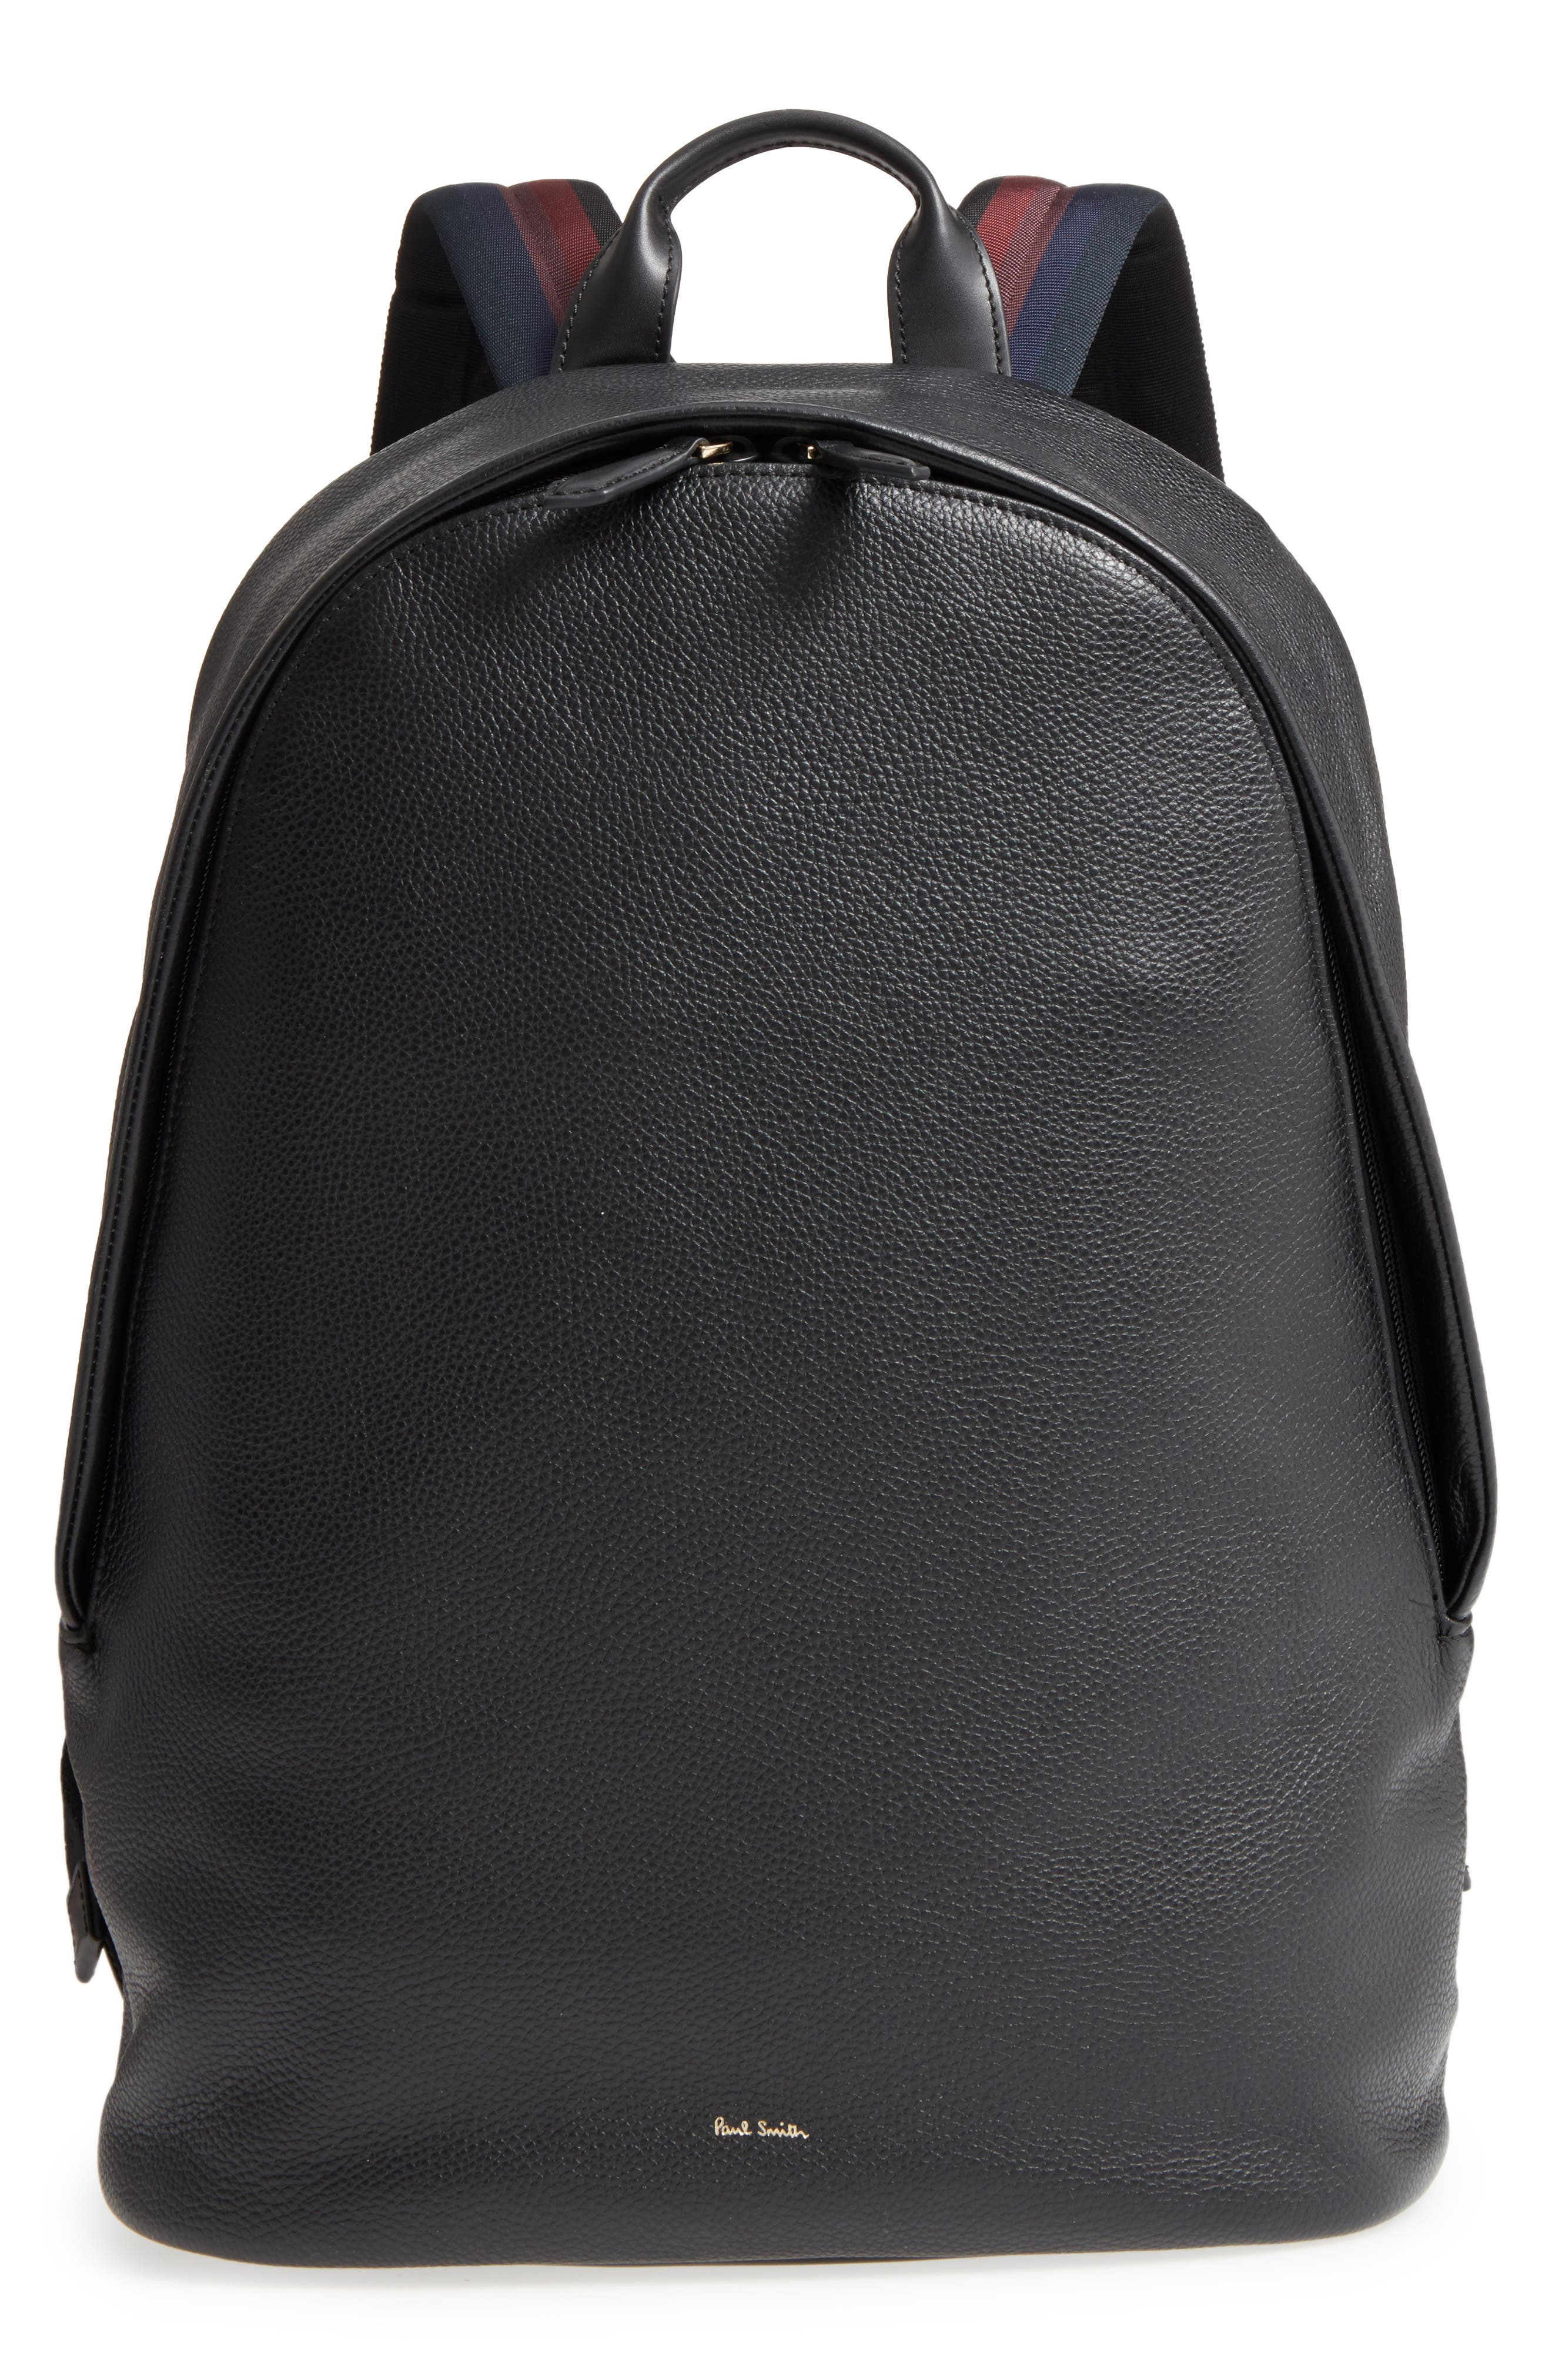 City Webbing Leather Backpack,                             Main thumbnail 1, color,                             001